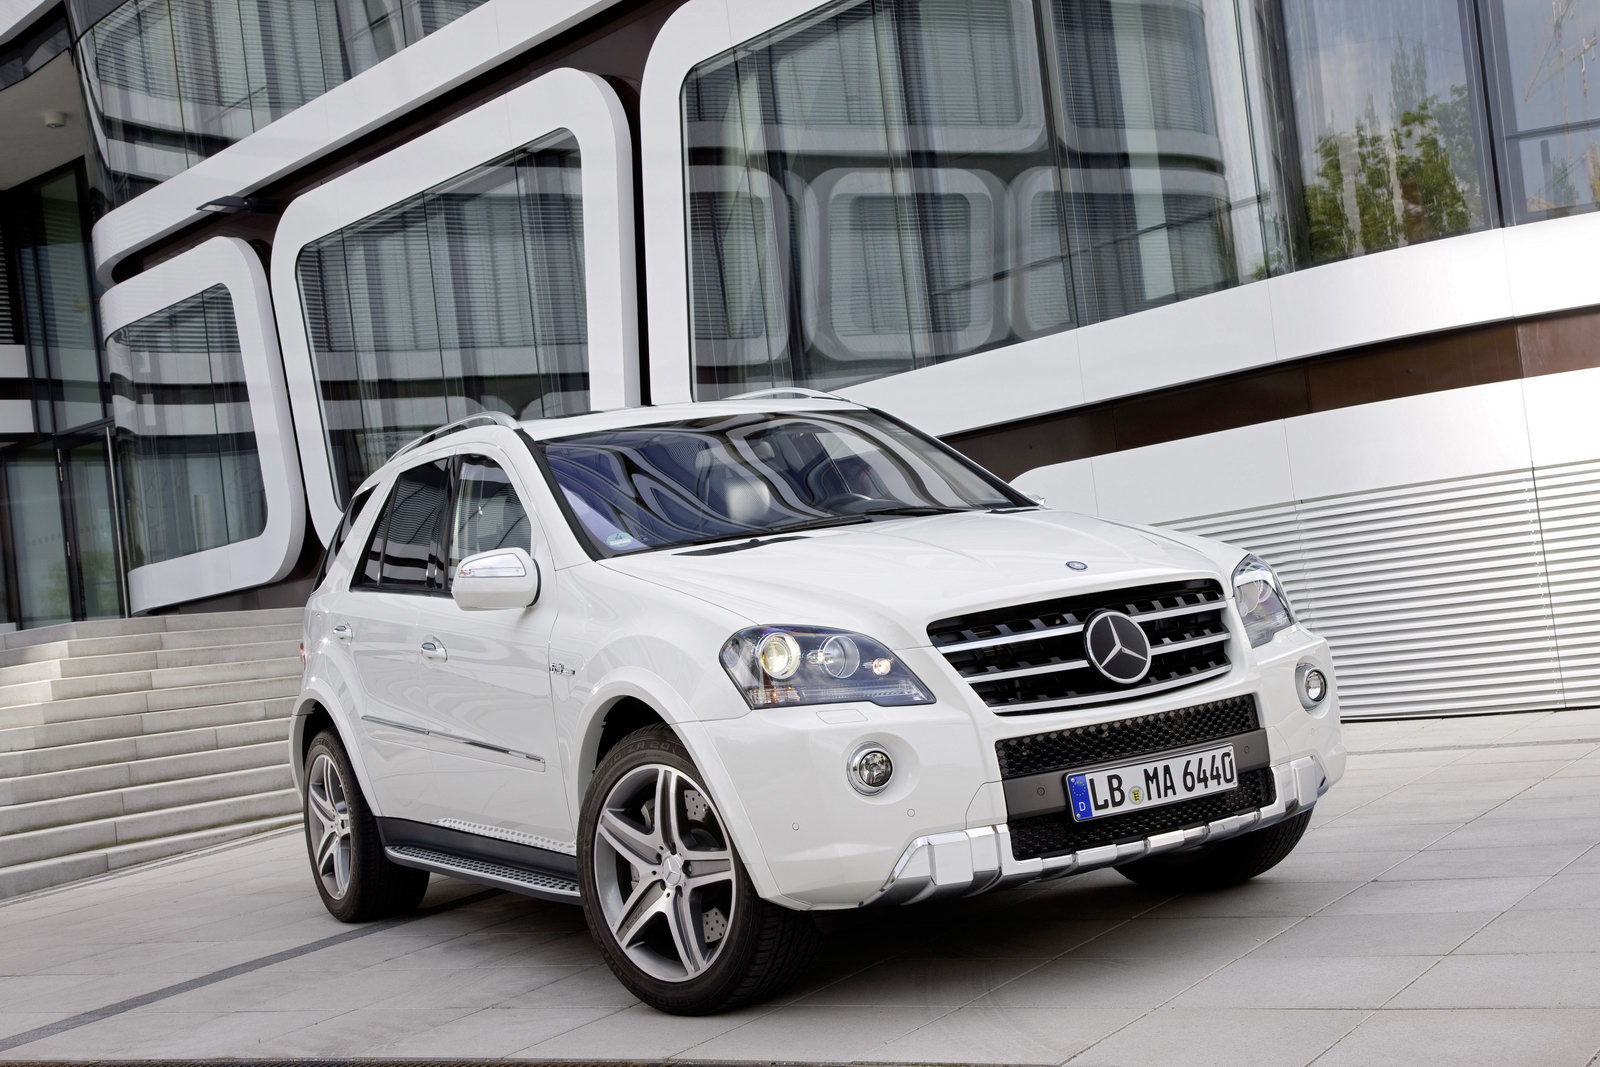 2011 mercedes benz ml63 amg receives minor cosmetic updates carscoops. Black Bedroom Furniture Sets. Home Design Ideas